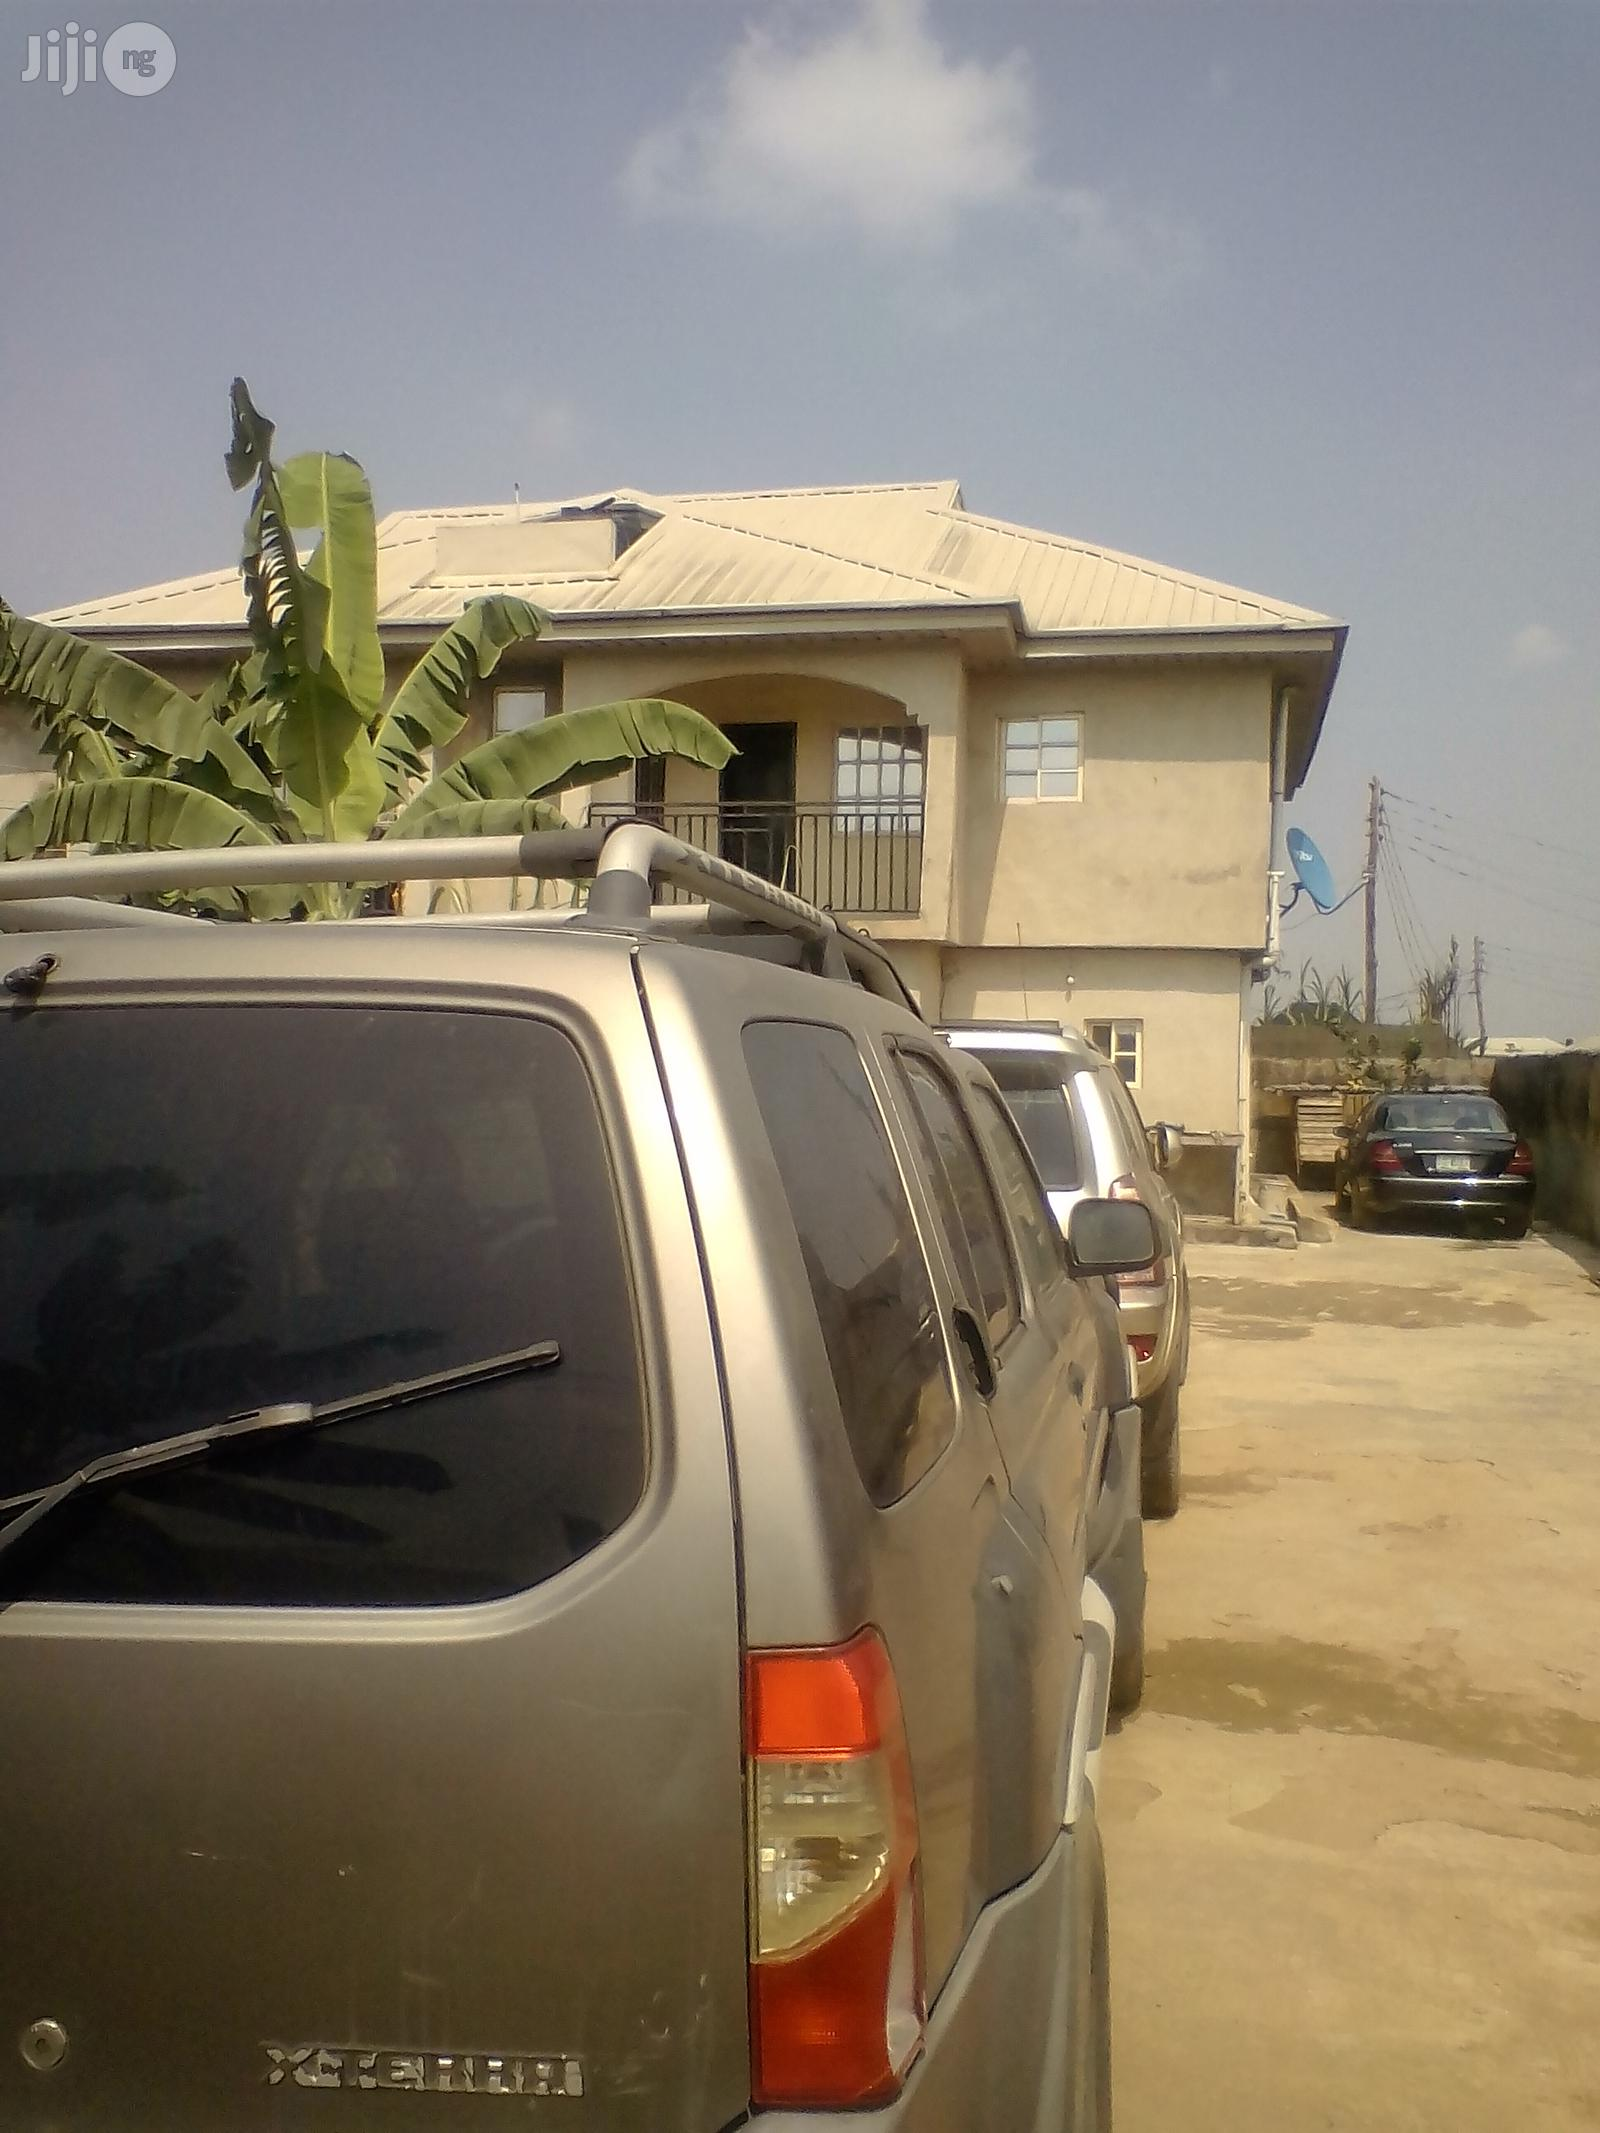 2 Bedroom Apartment at Bucknor for Rent.